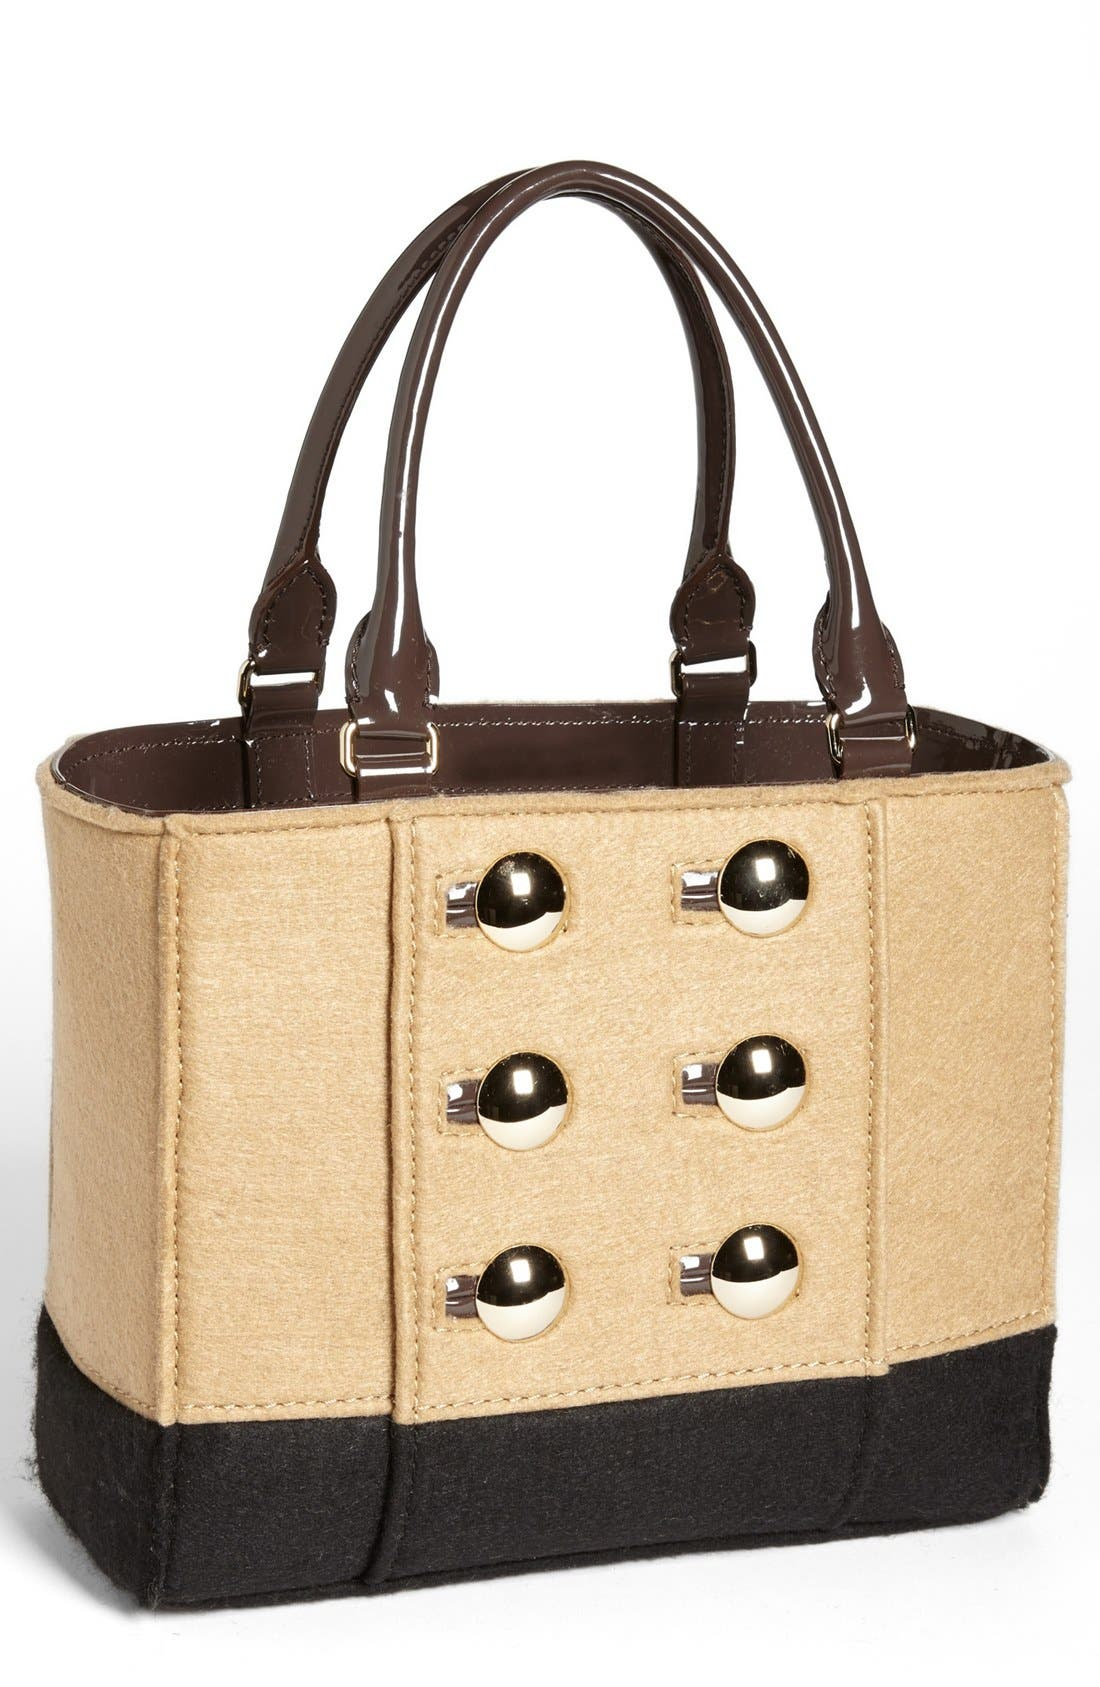 Main Image - kate spade new york 'beantown - quinn' tote